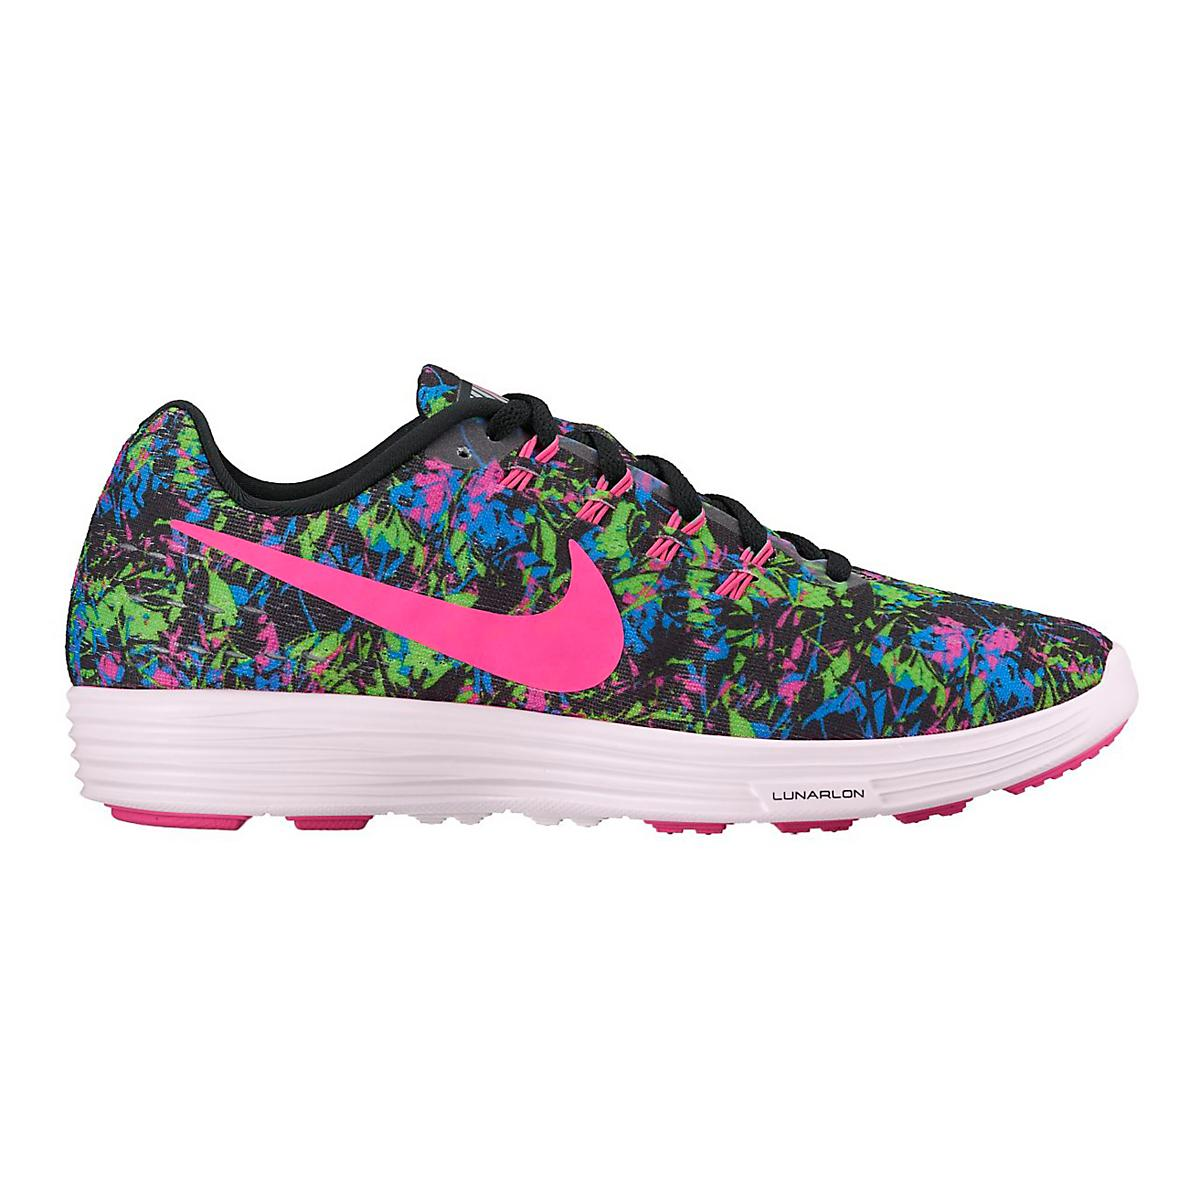 detailed look 6e2cf 5317d Womens Nike LunarTempo 2 Print Running Shoe at Road Runner S